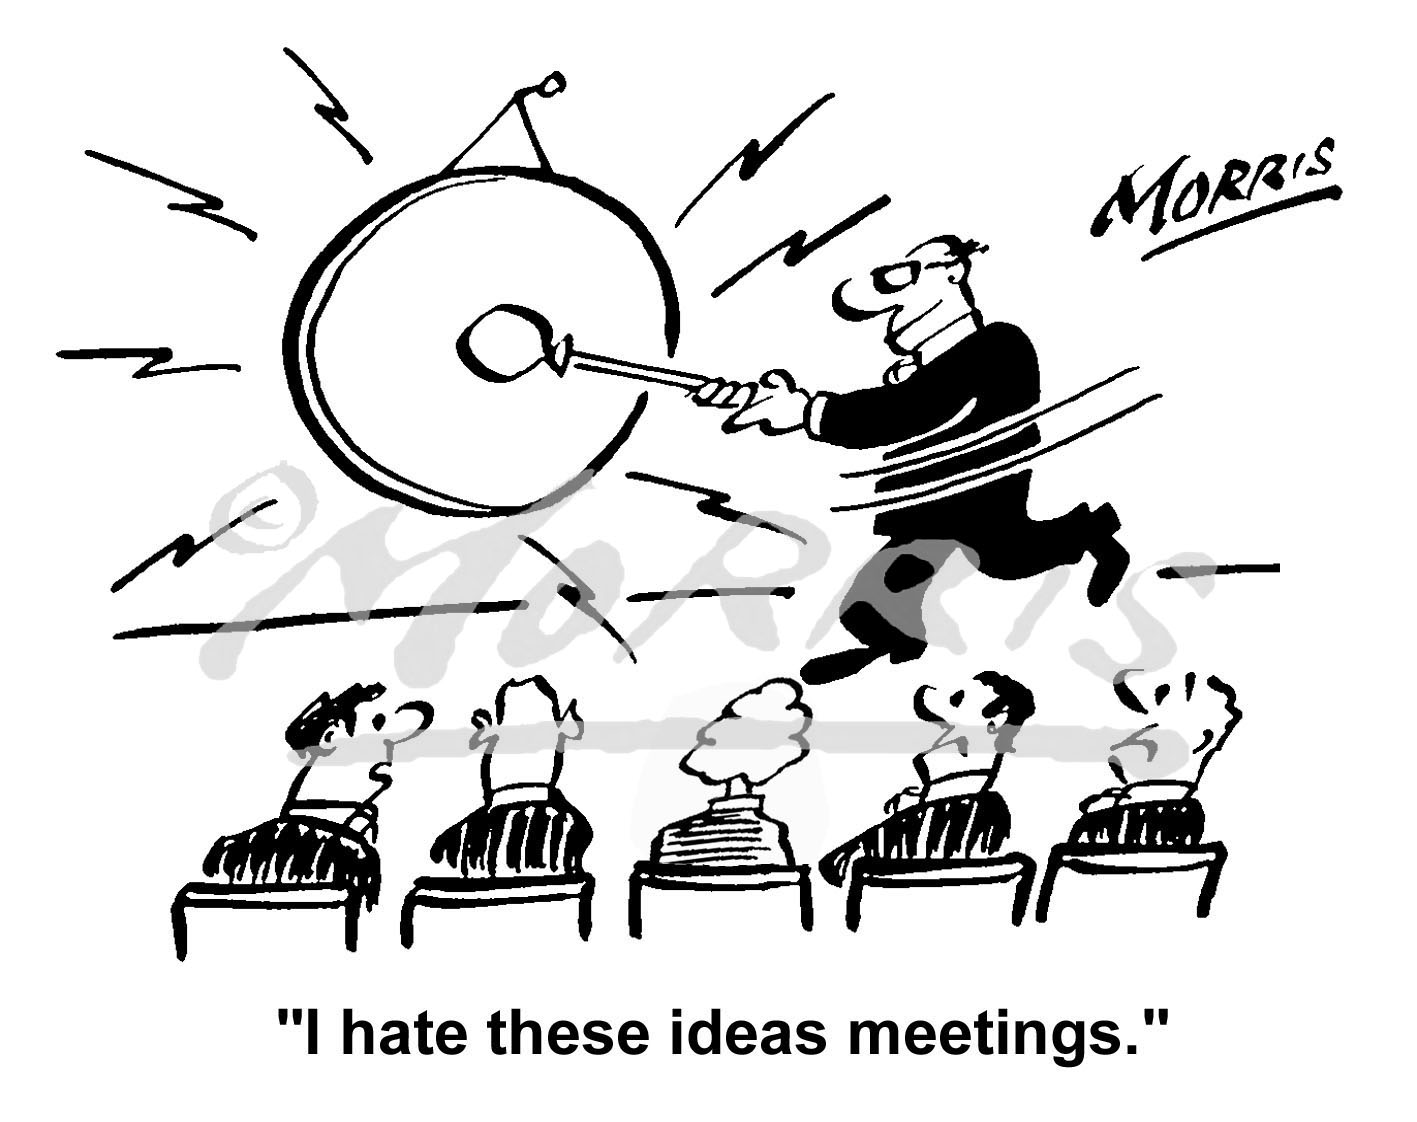 Office meeting cartoon, staff meeting cartoon- Ref: 1731bw